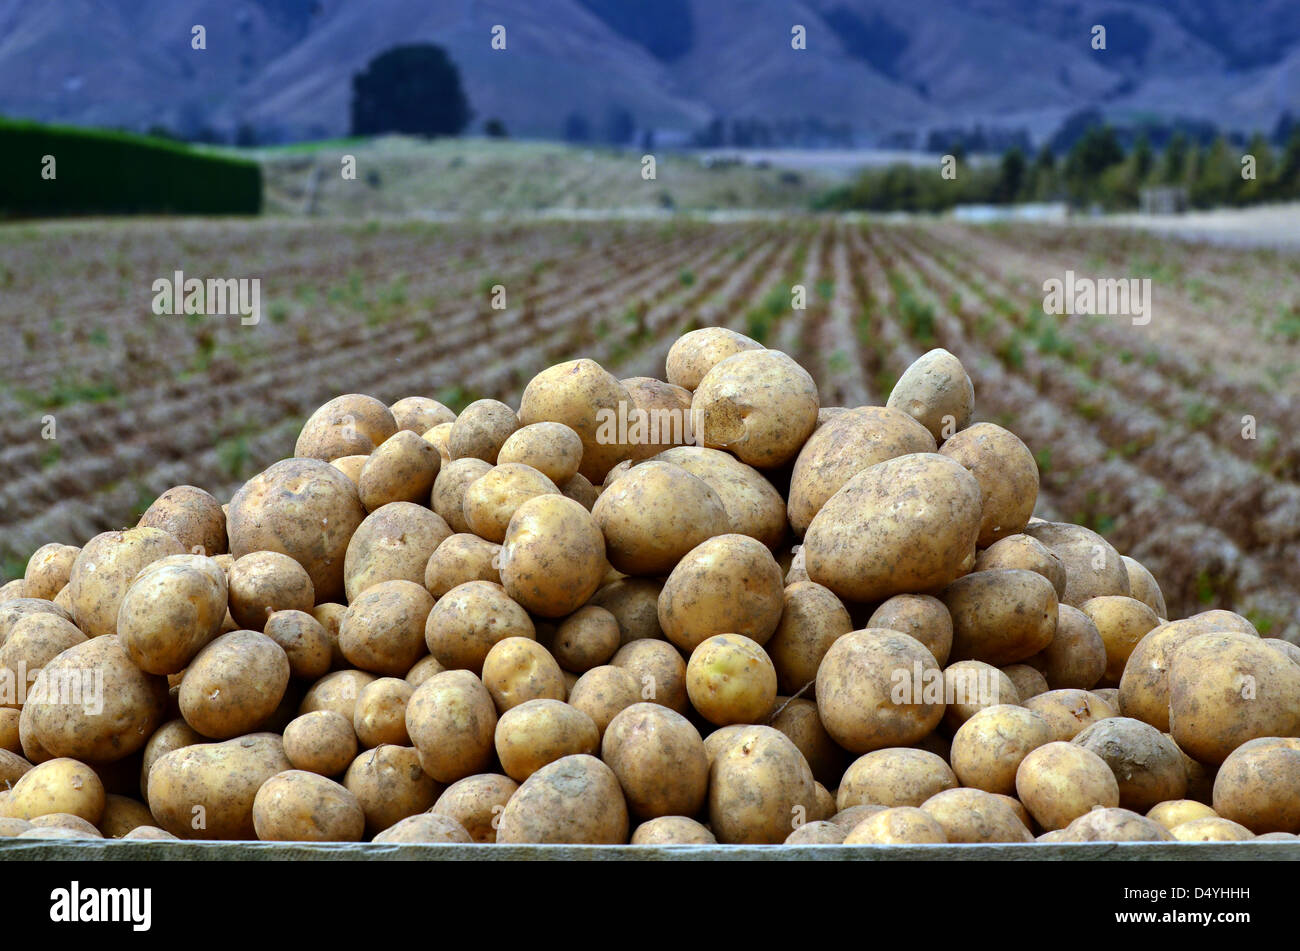 Fresh potatoes inside a container in a potatoes field at the North Island of New Zealand. - Stock Image